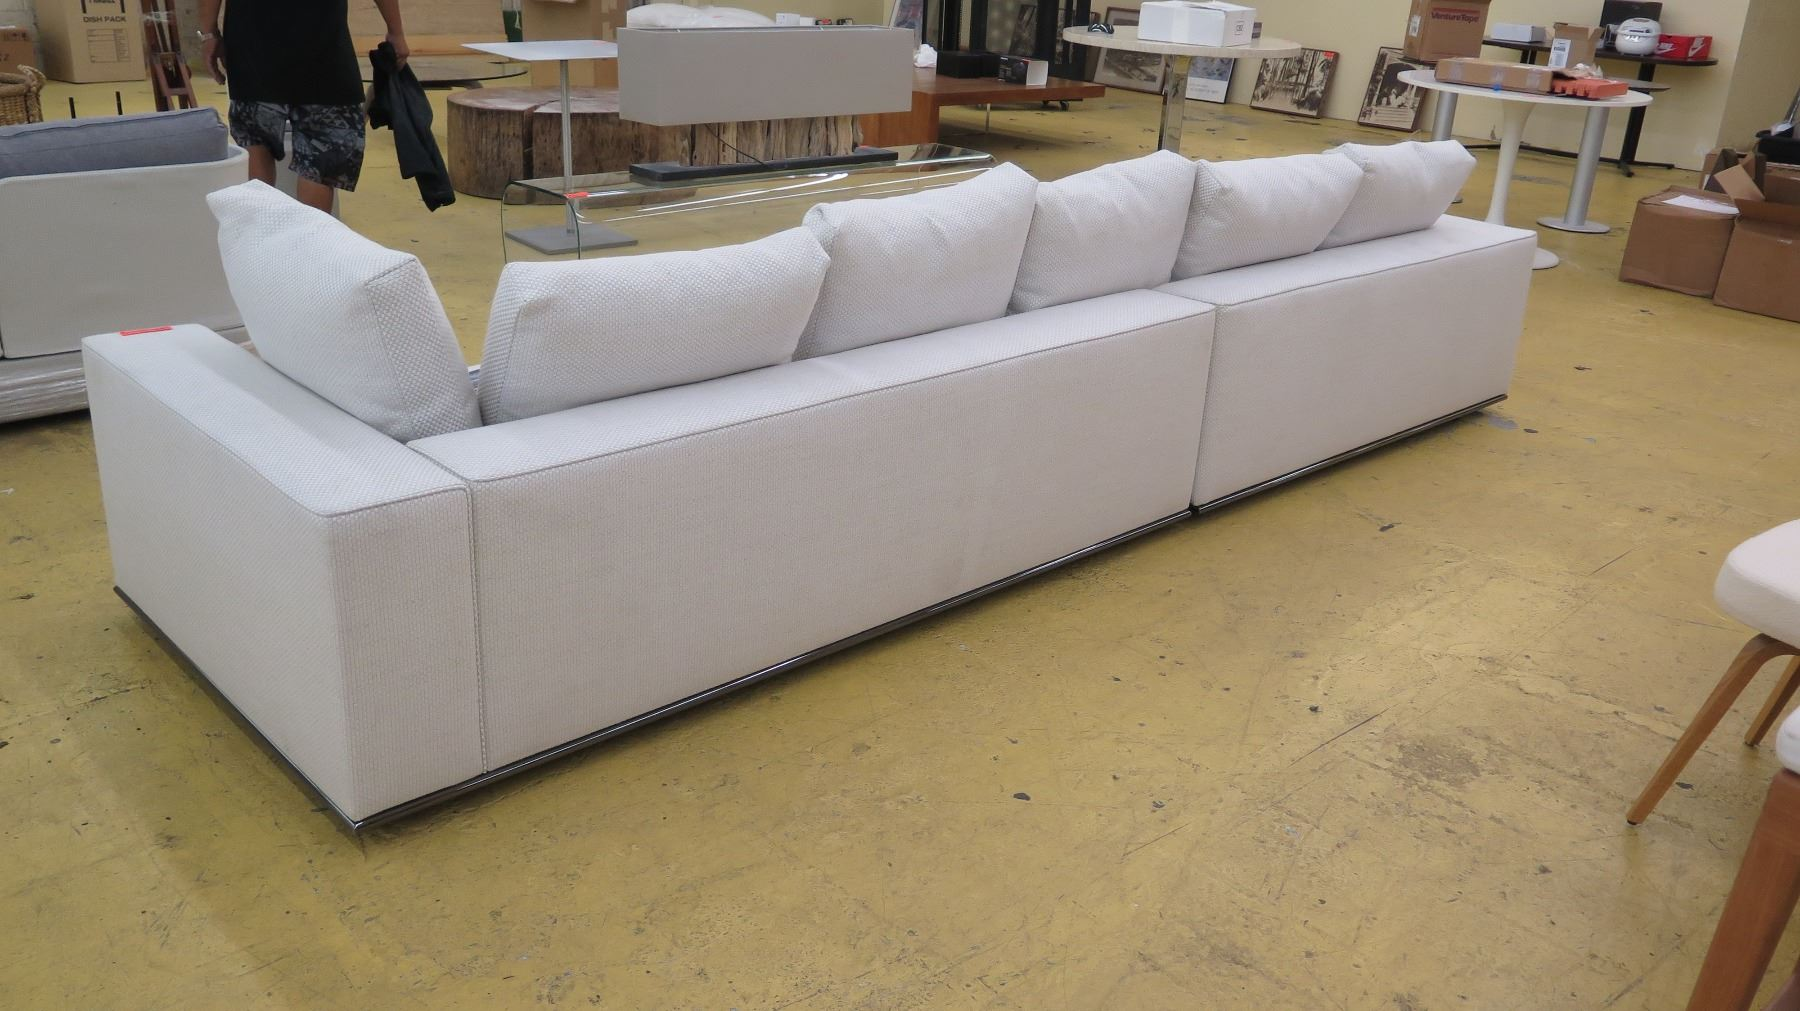 Excellent White Beige Woven Minotti Sectional Sofa 2 Sections 143 Machost Co Dining Chair Design Ideas Machostcouk